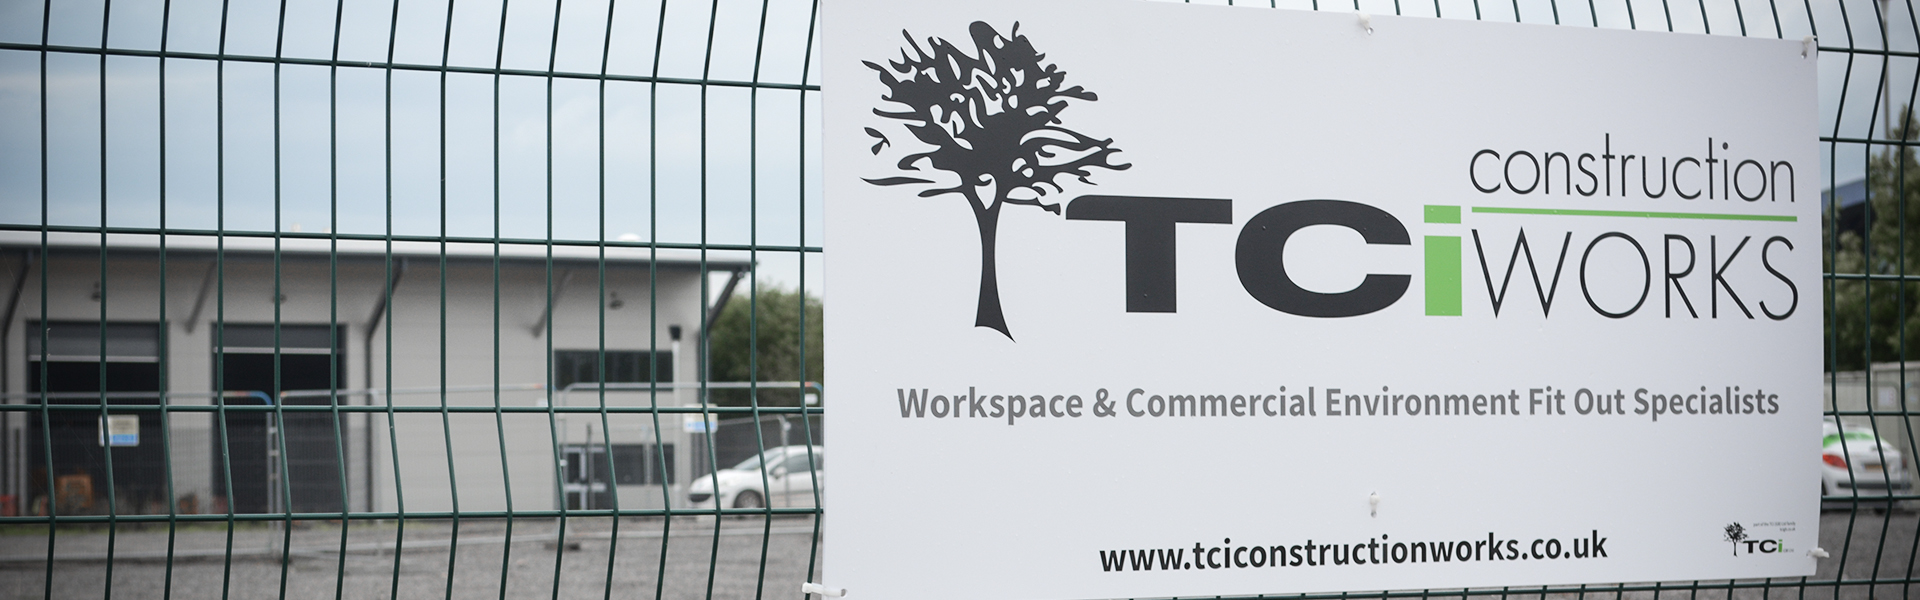 £4m catering facility build contract underway for TCi construction WORKS